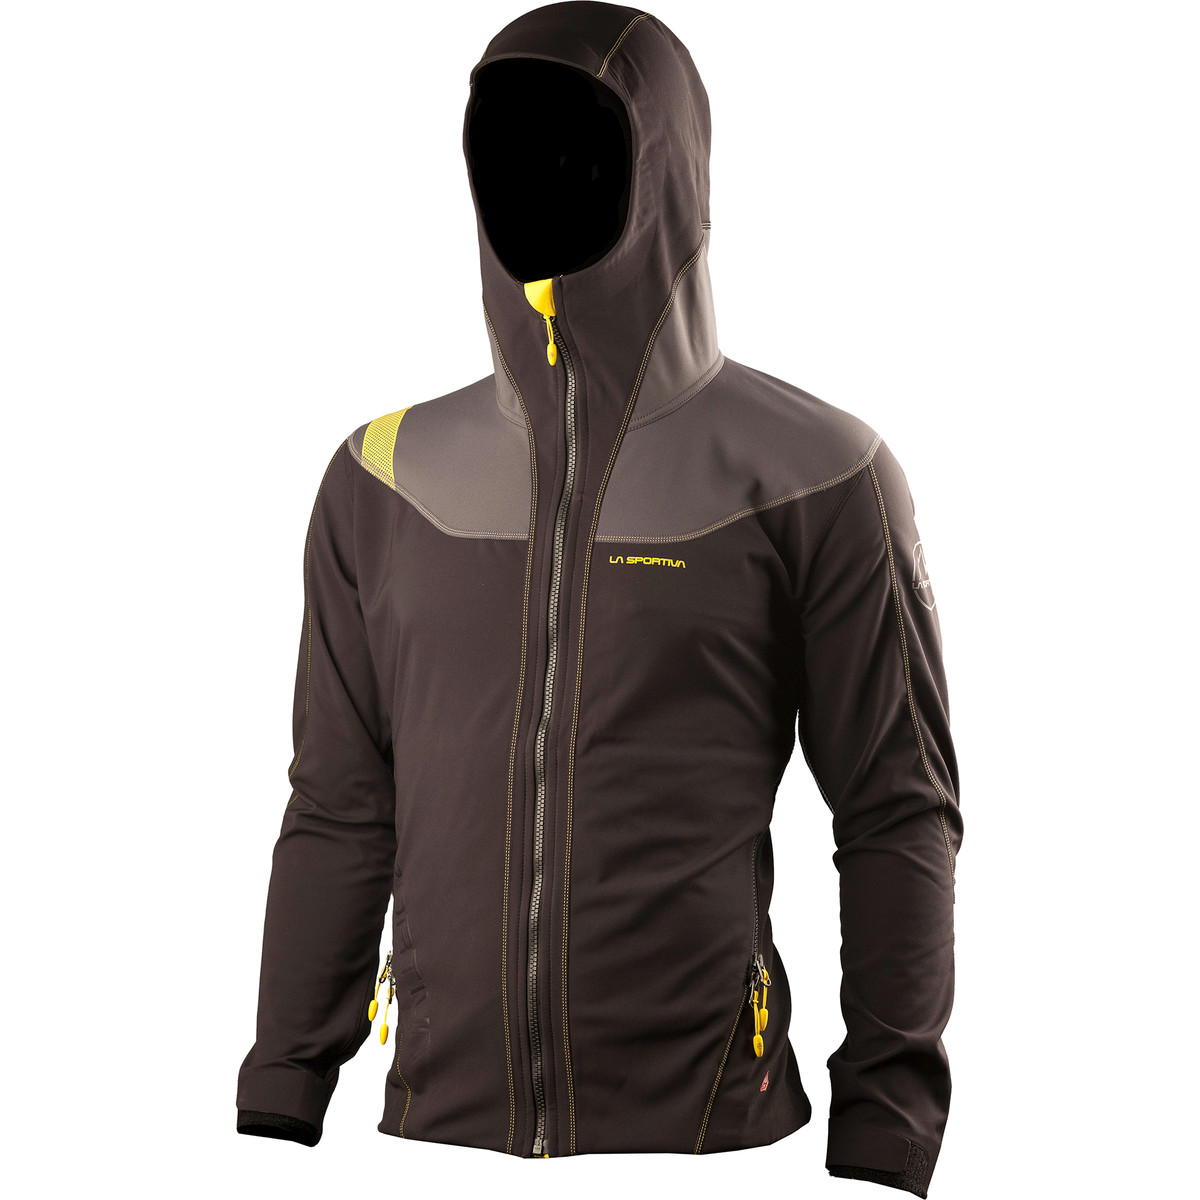 La Sportiva Adjuster Soft Shell Jacket